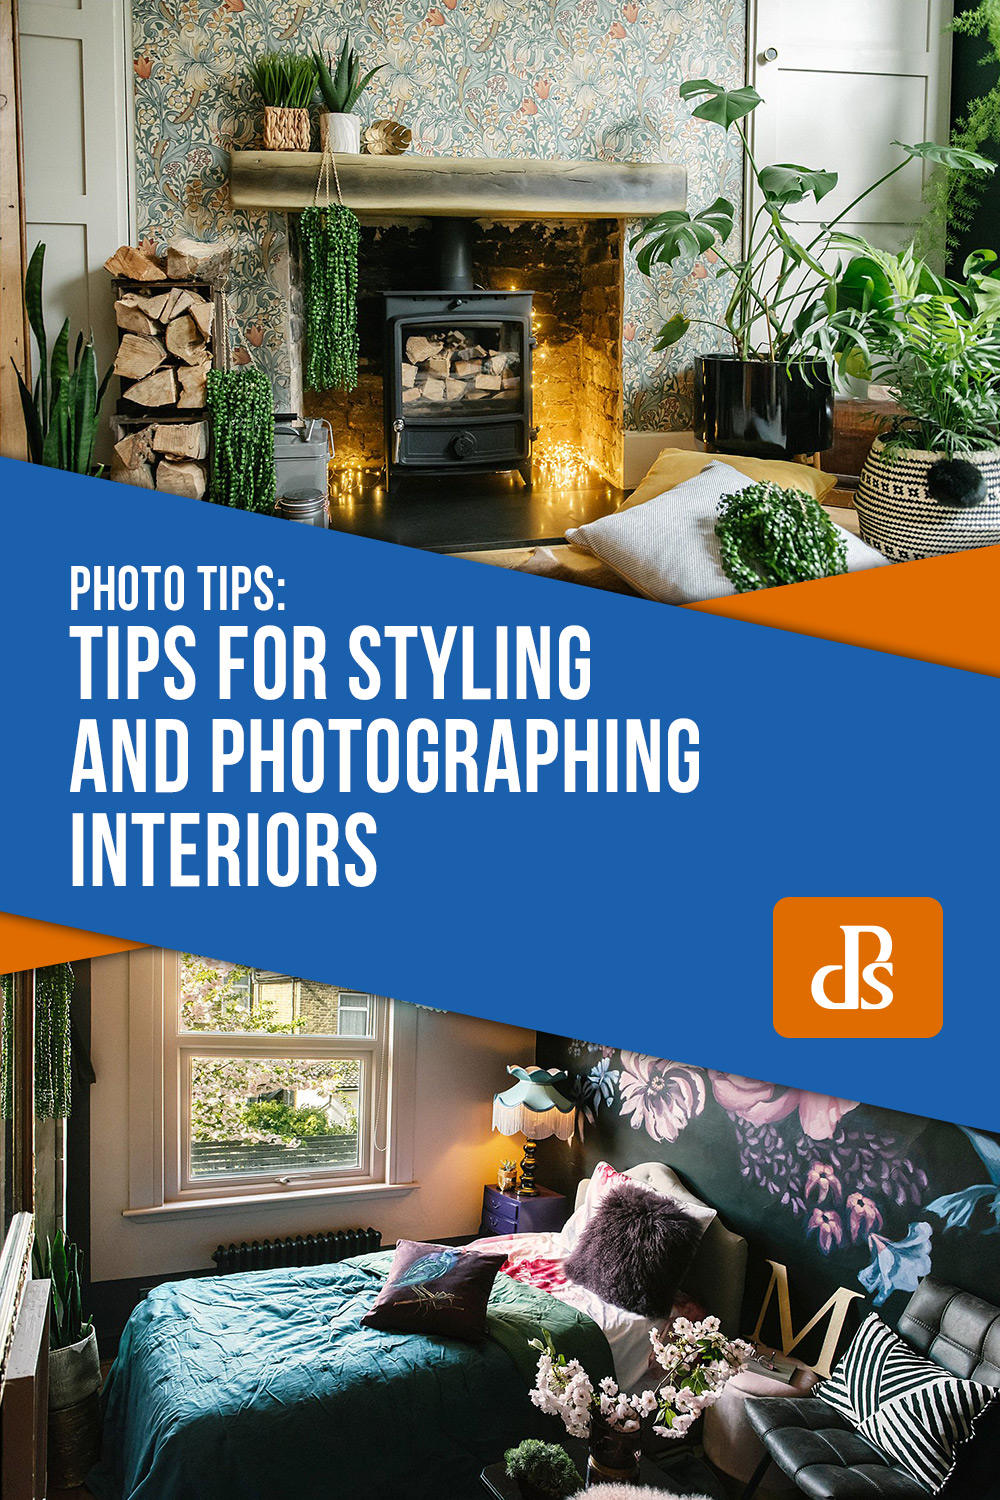 Tips for Styling and Photographing Interiors